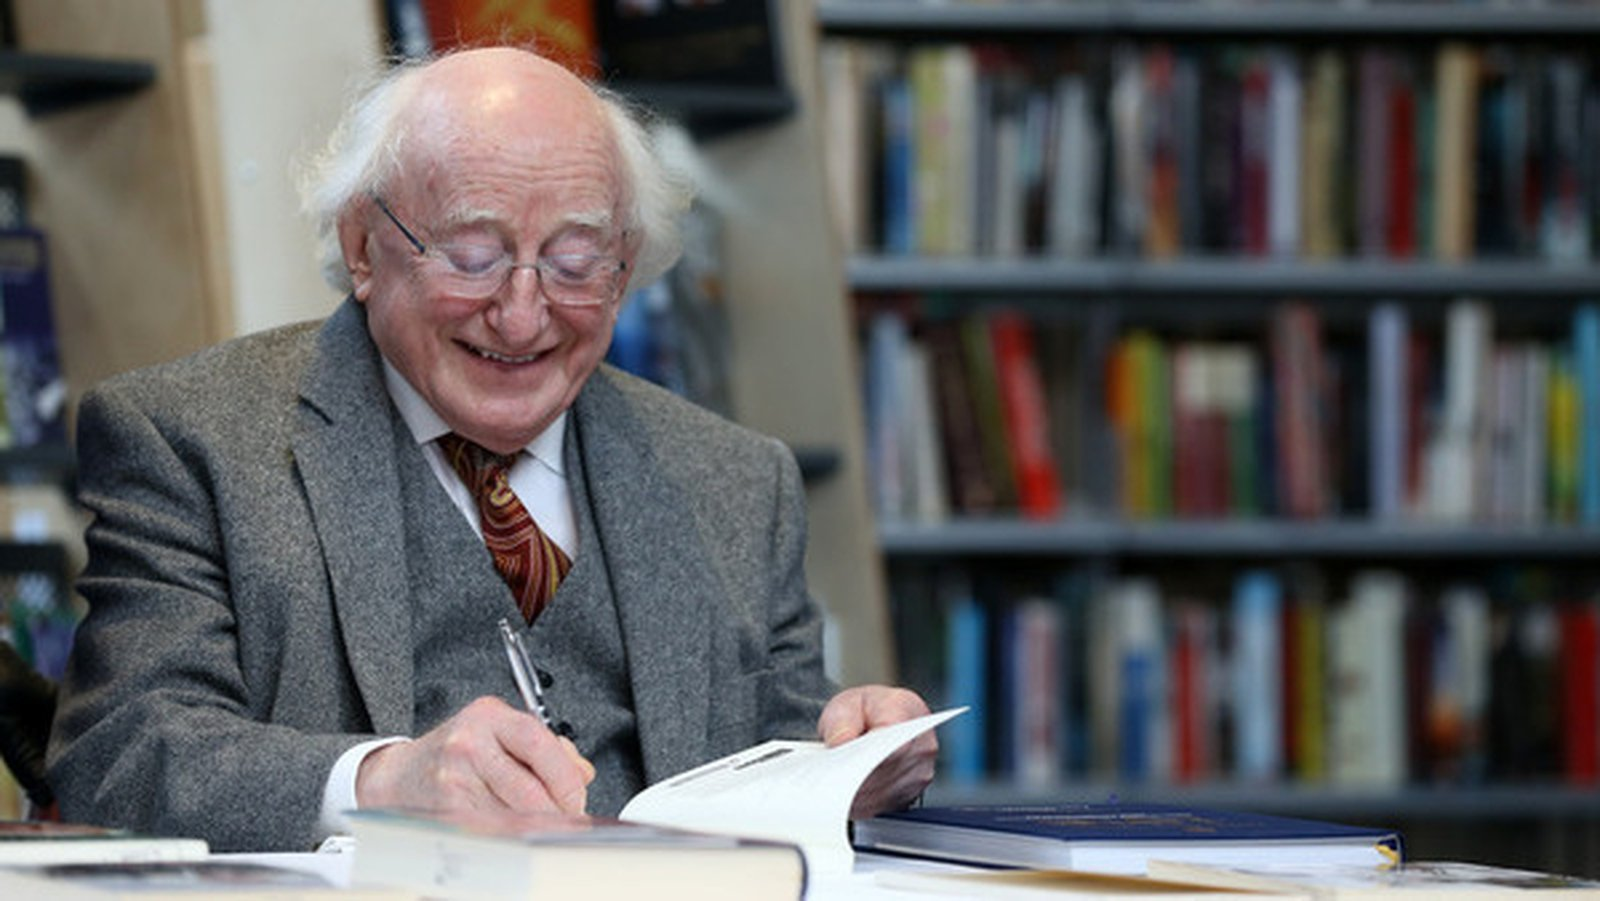 President Higgins donates books to public libraries